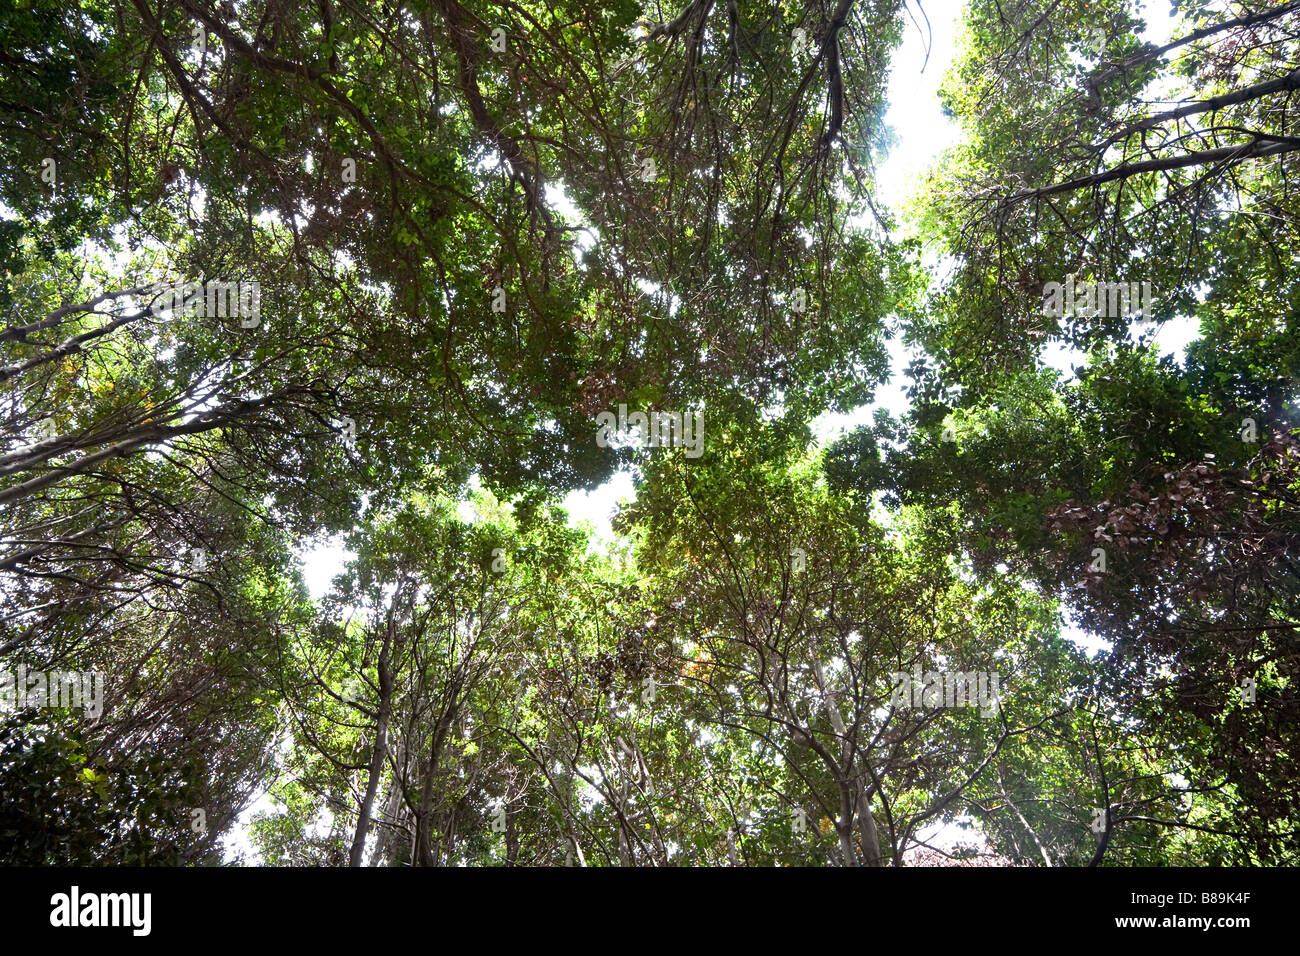 Looking up into tree canopy of laurel subtropical forest Gran Canaria Spain - Stock Image